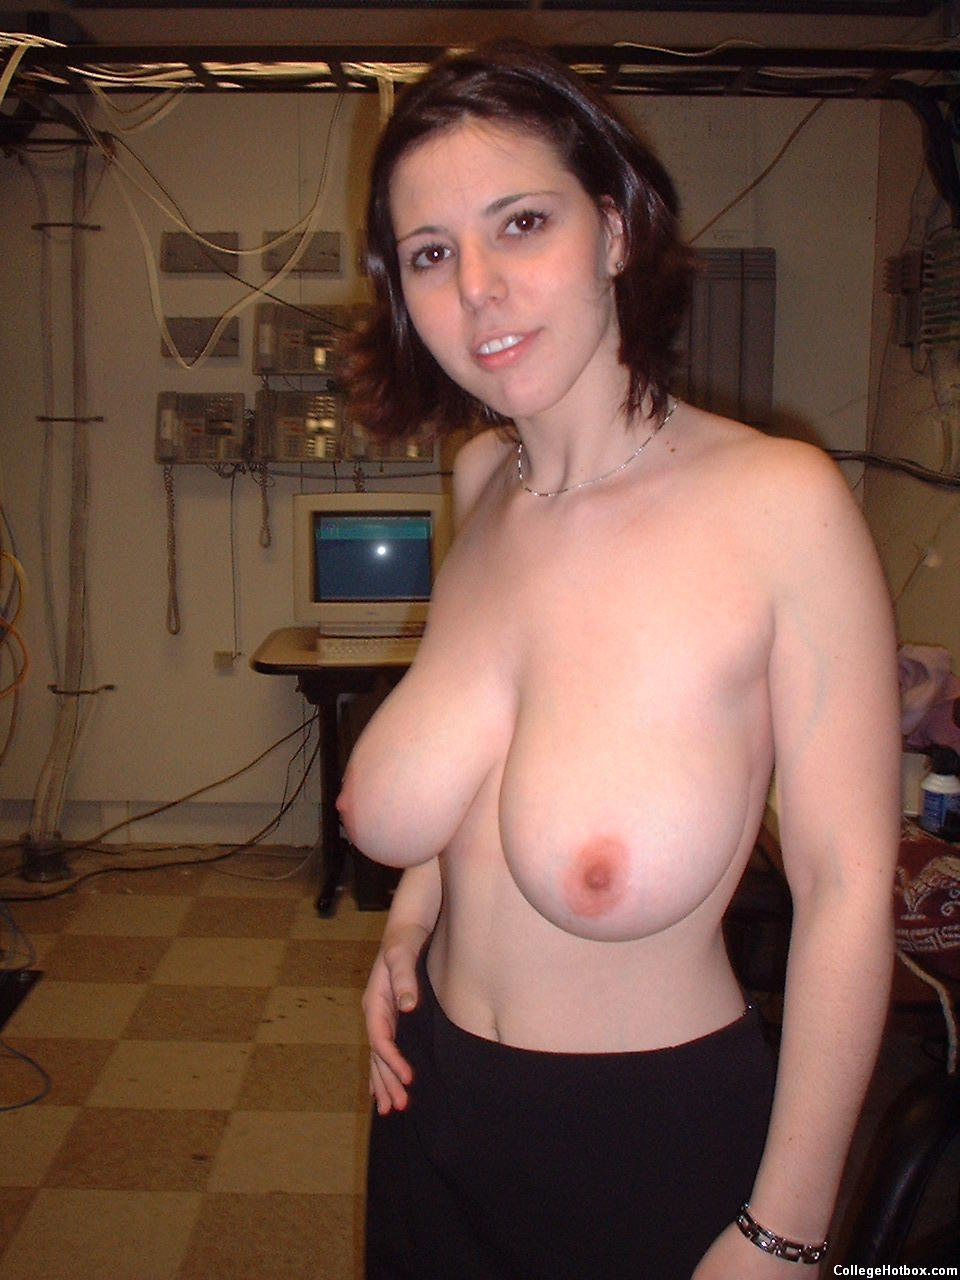 Nerd girls tits with big